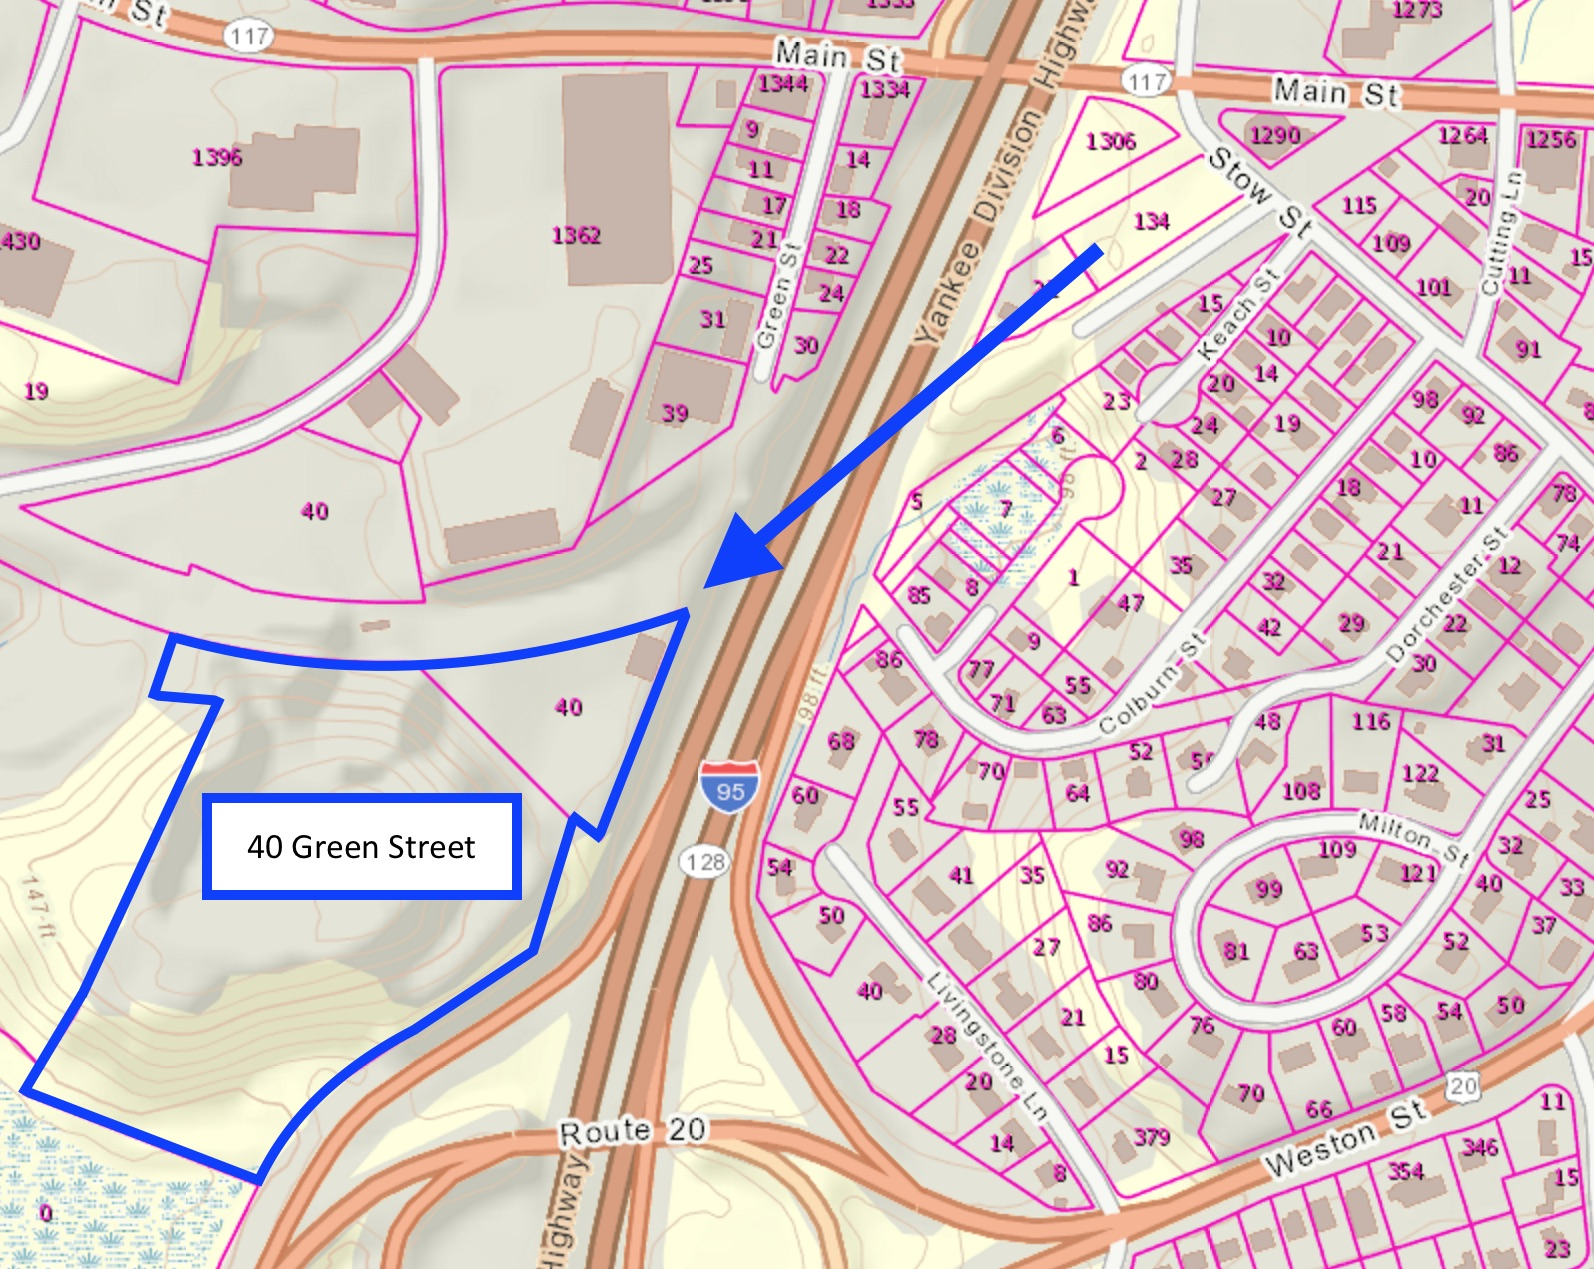 40 green street development site route 128 used auto parts office space hobbs brook management